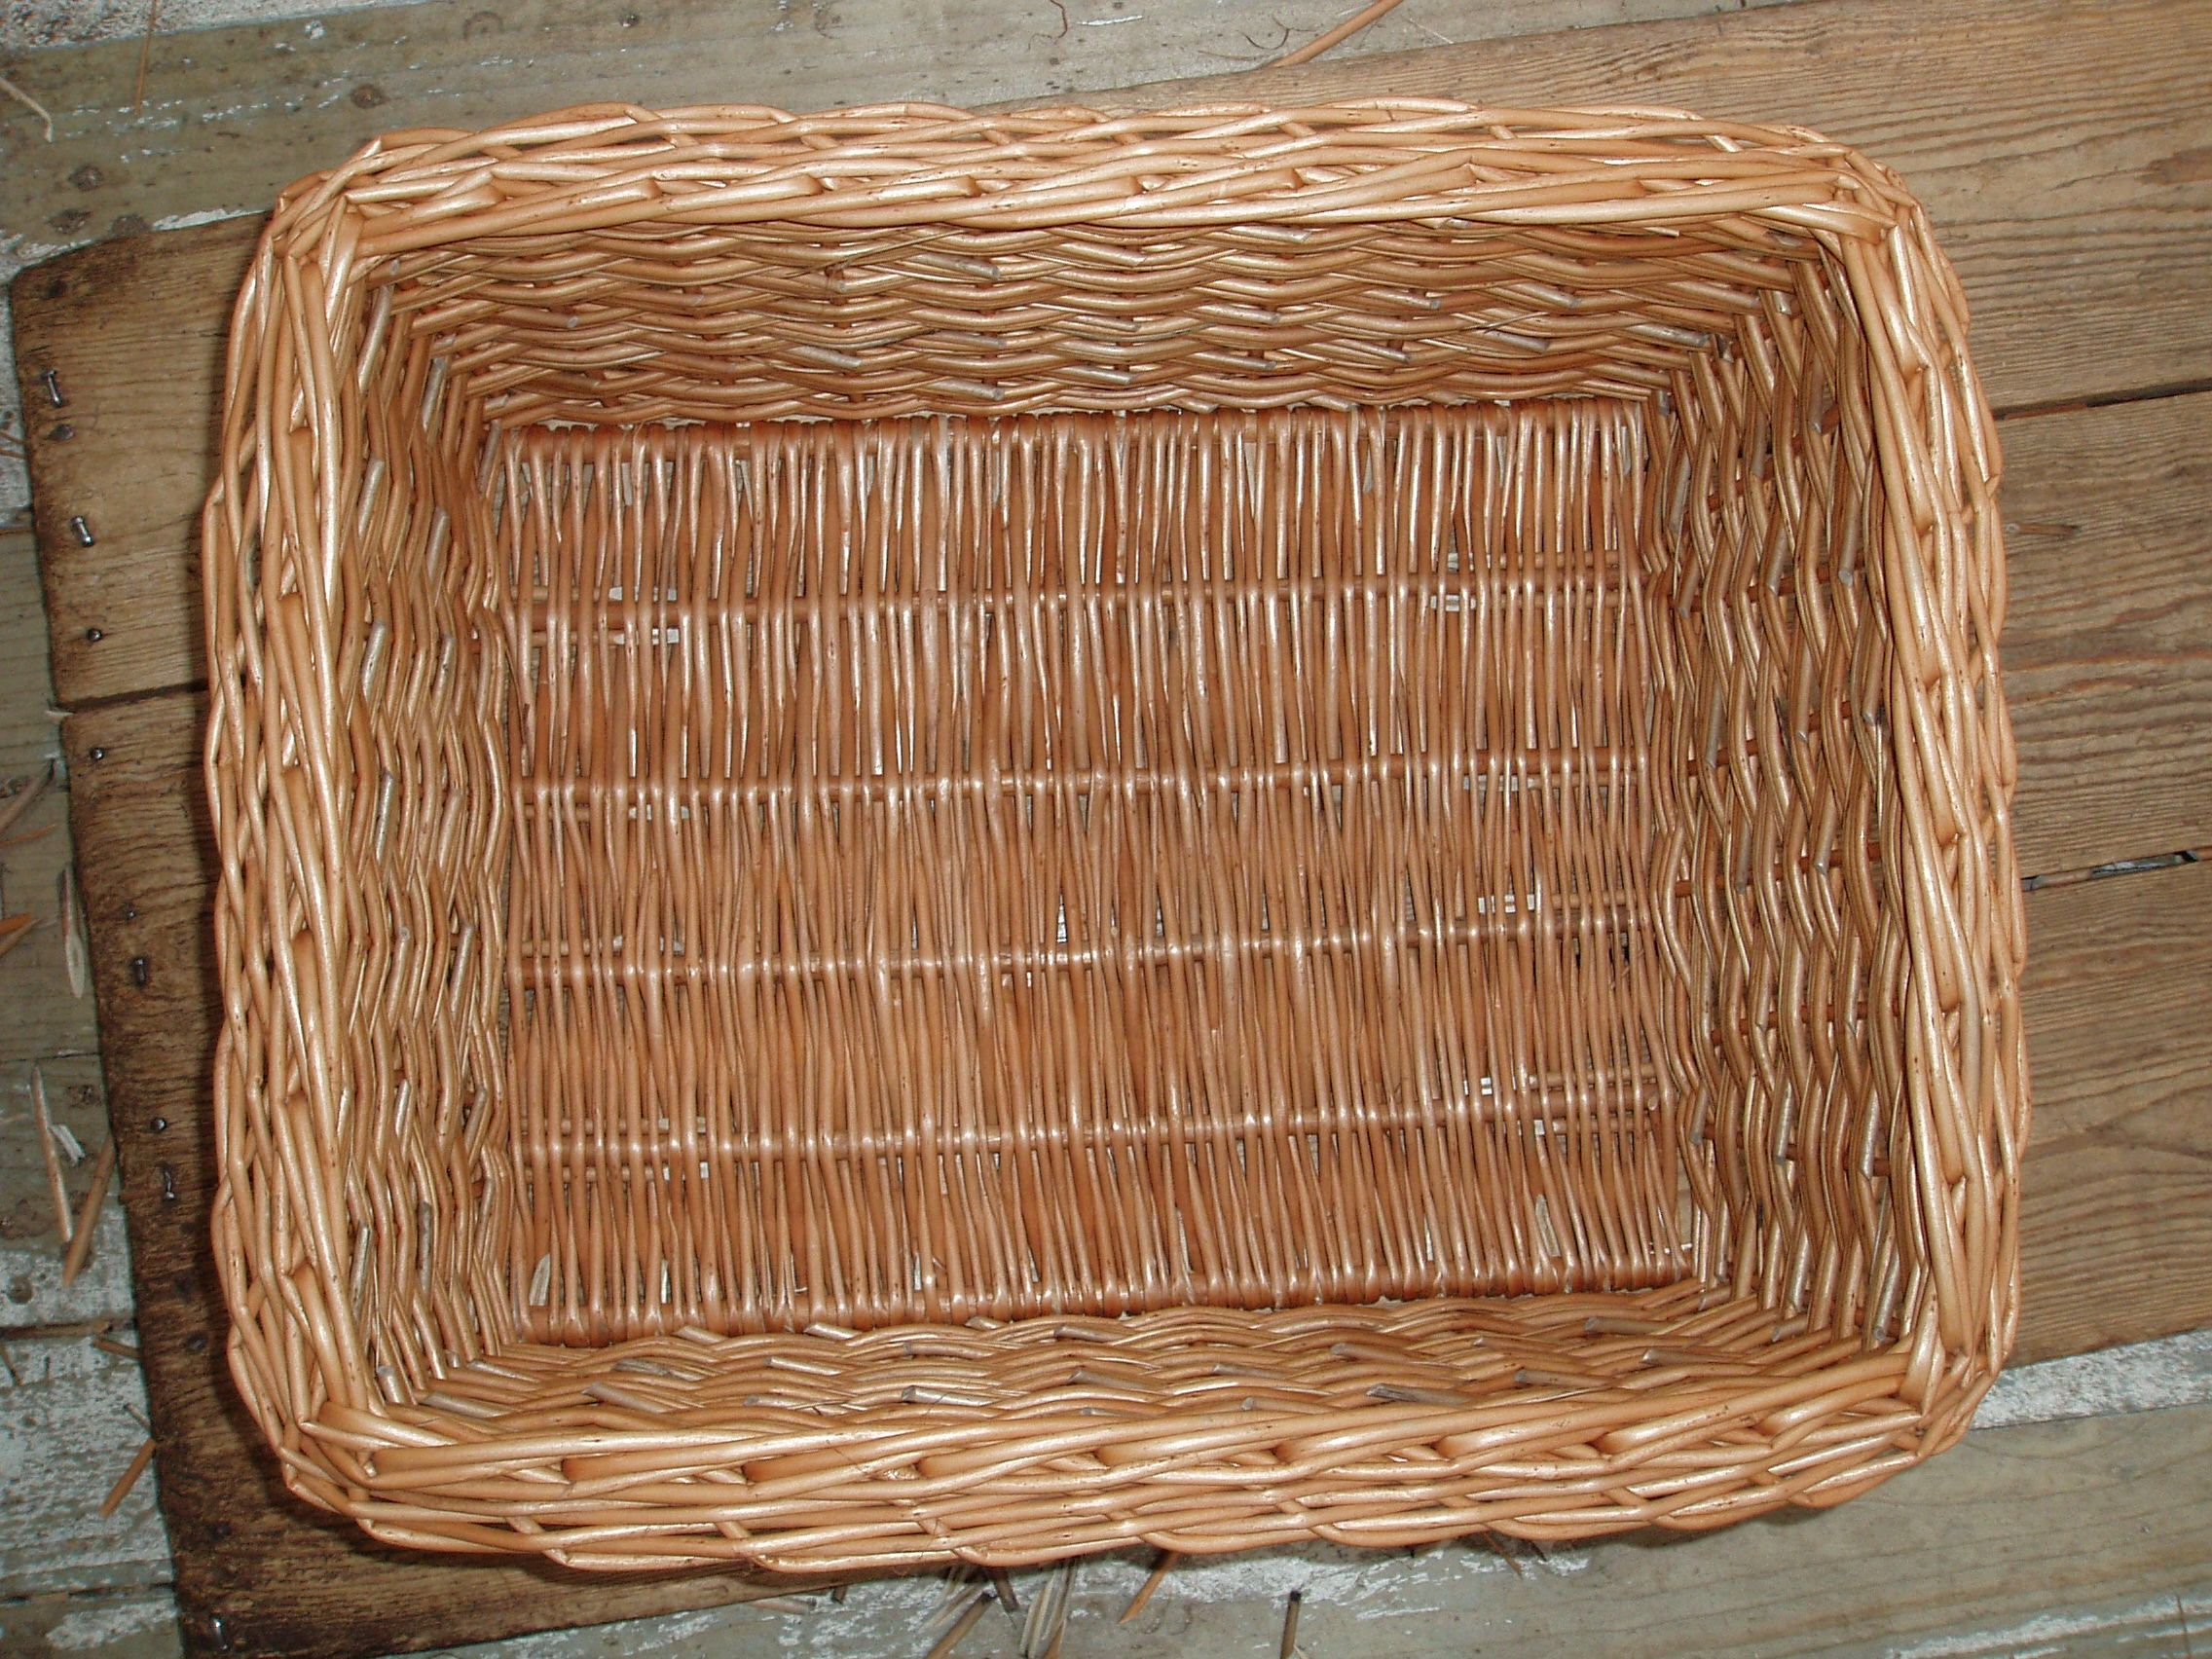 Wicker storage basket home storage baskets melbury rectangular wicker - Again The View From The Top Showing The Special Border An Even Thickness Of